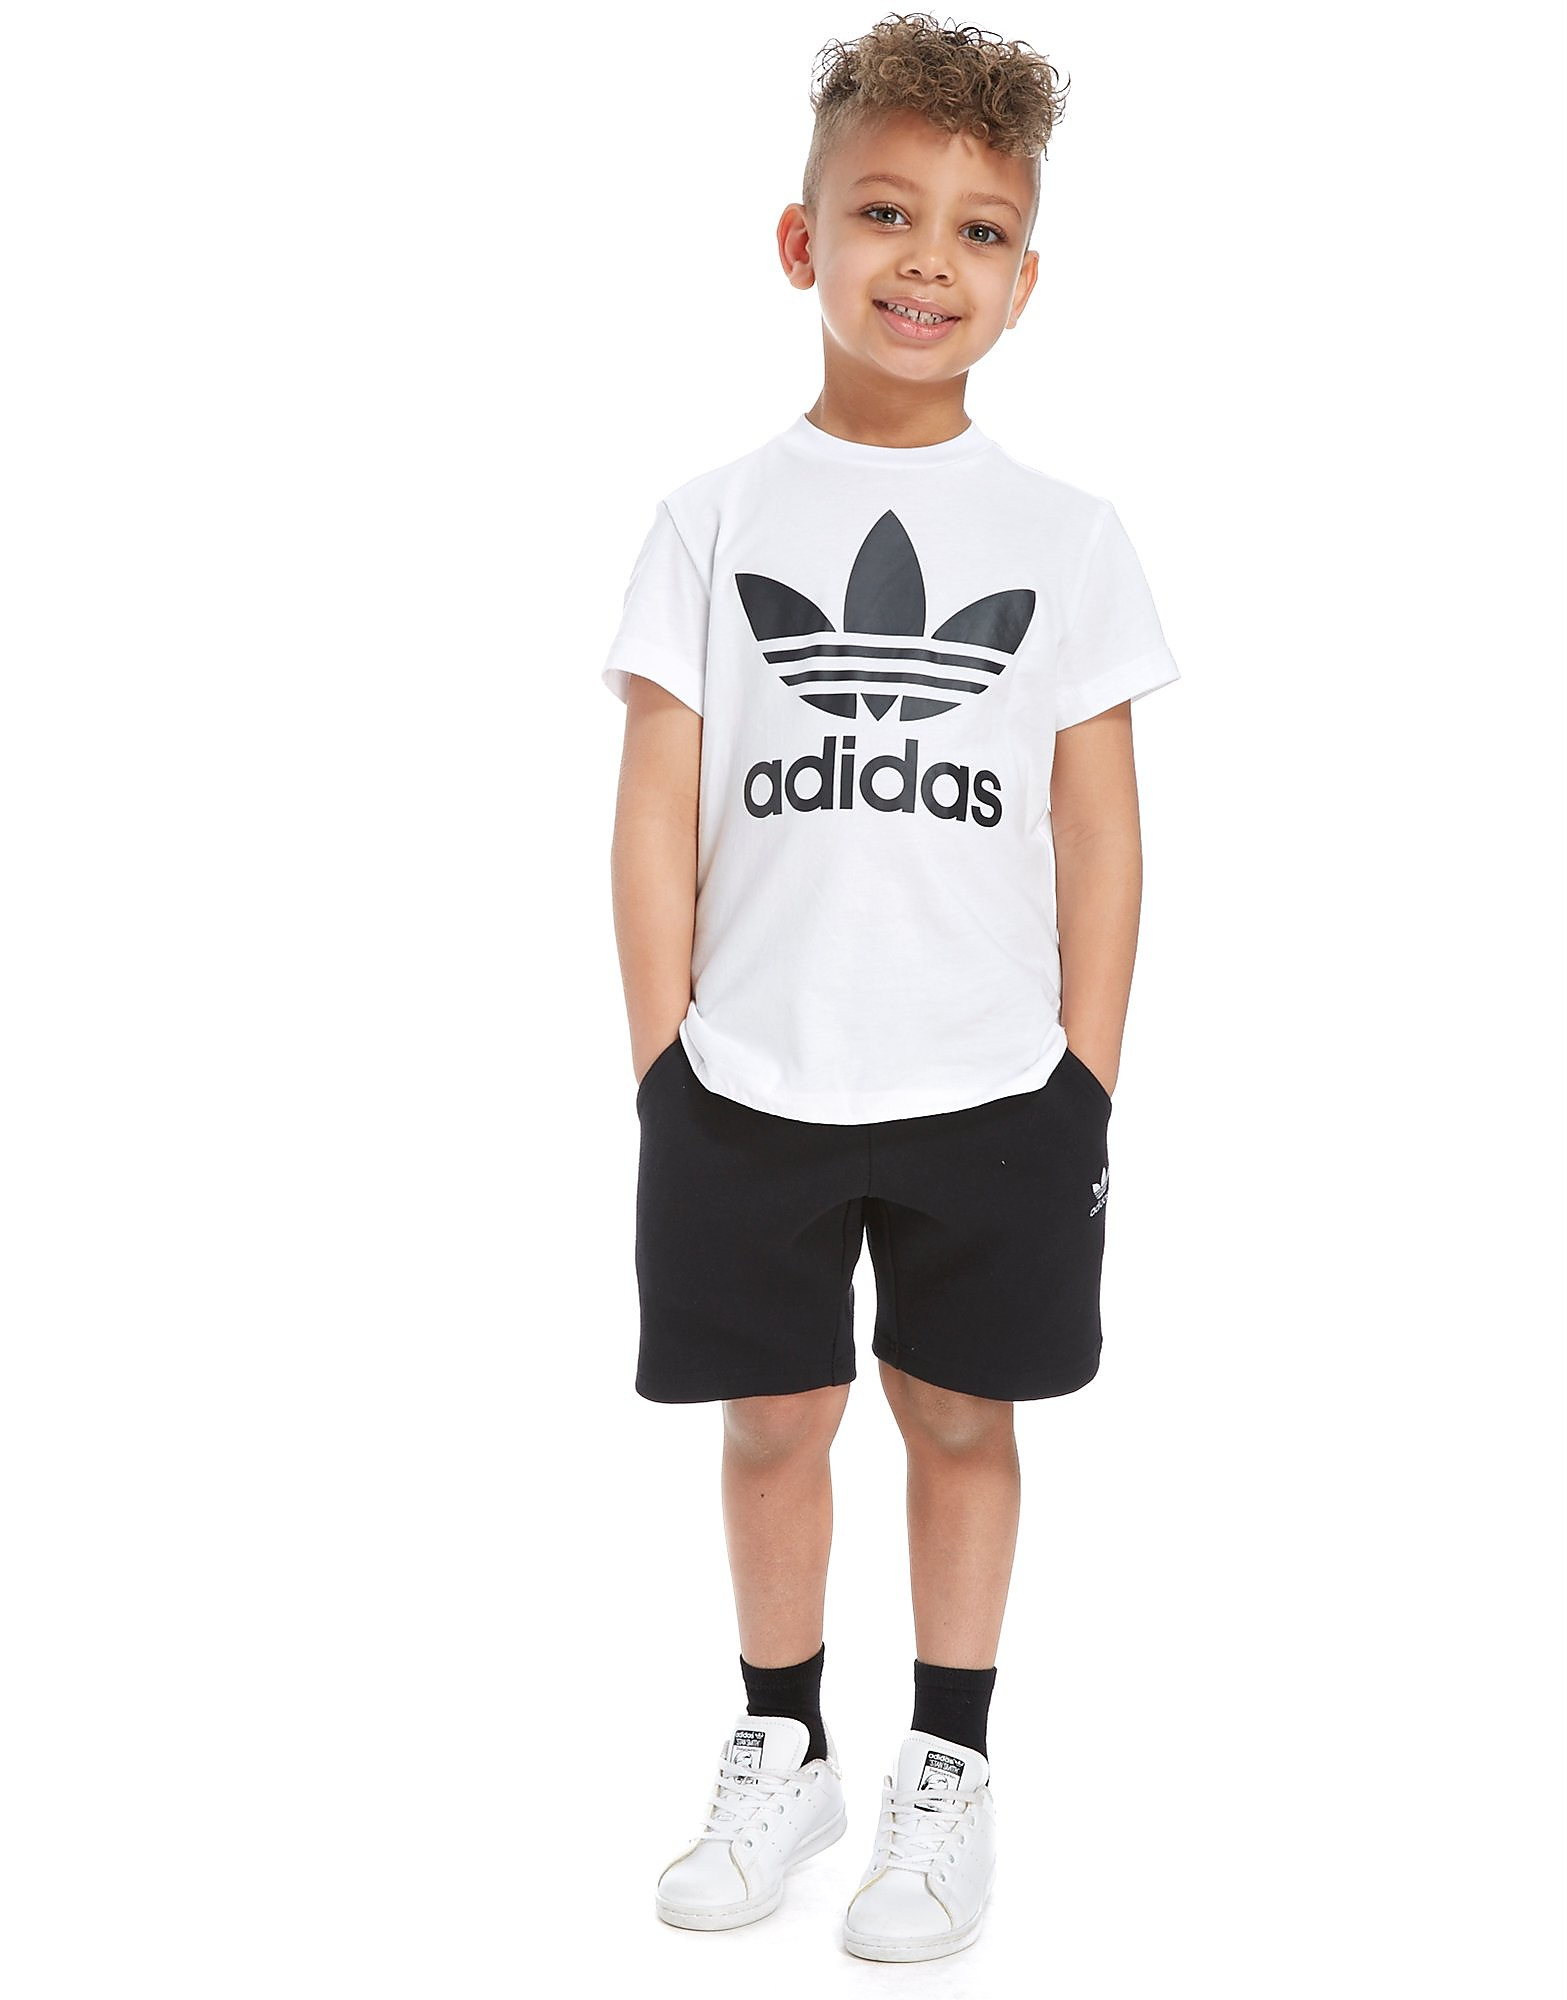 adidas Originals T-Shirt & Short Set Children